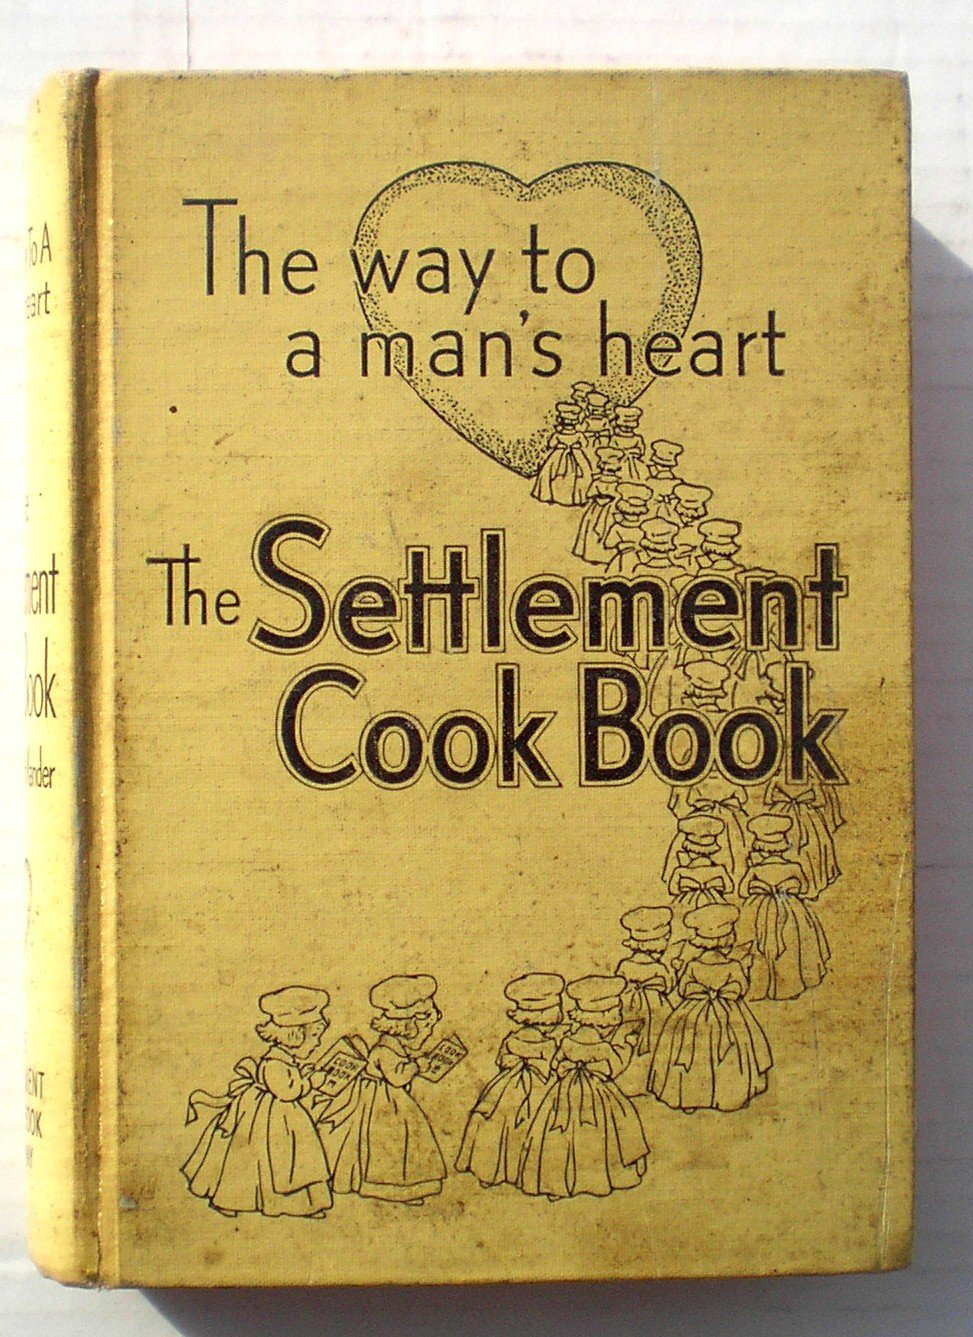 A yellow book cover with the title and an image of a heart